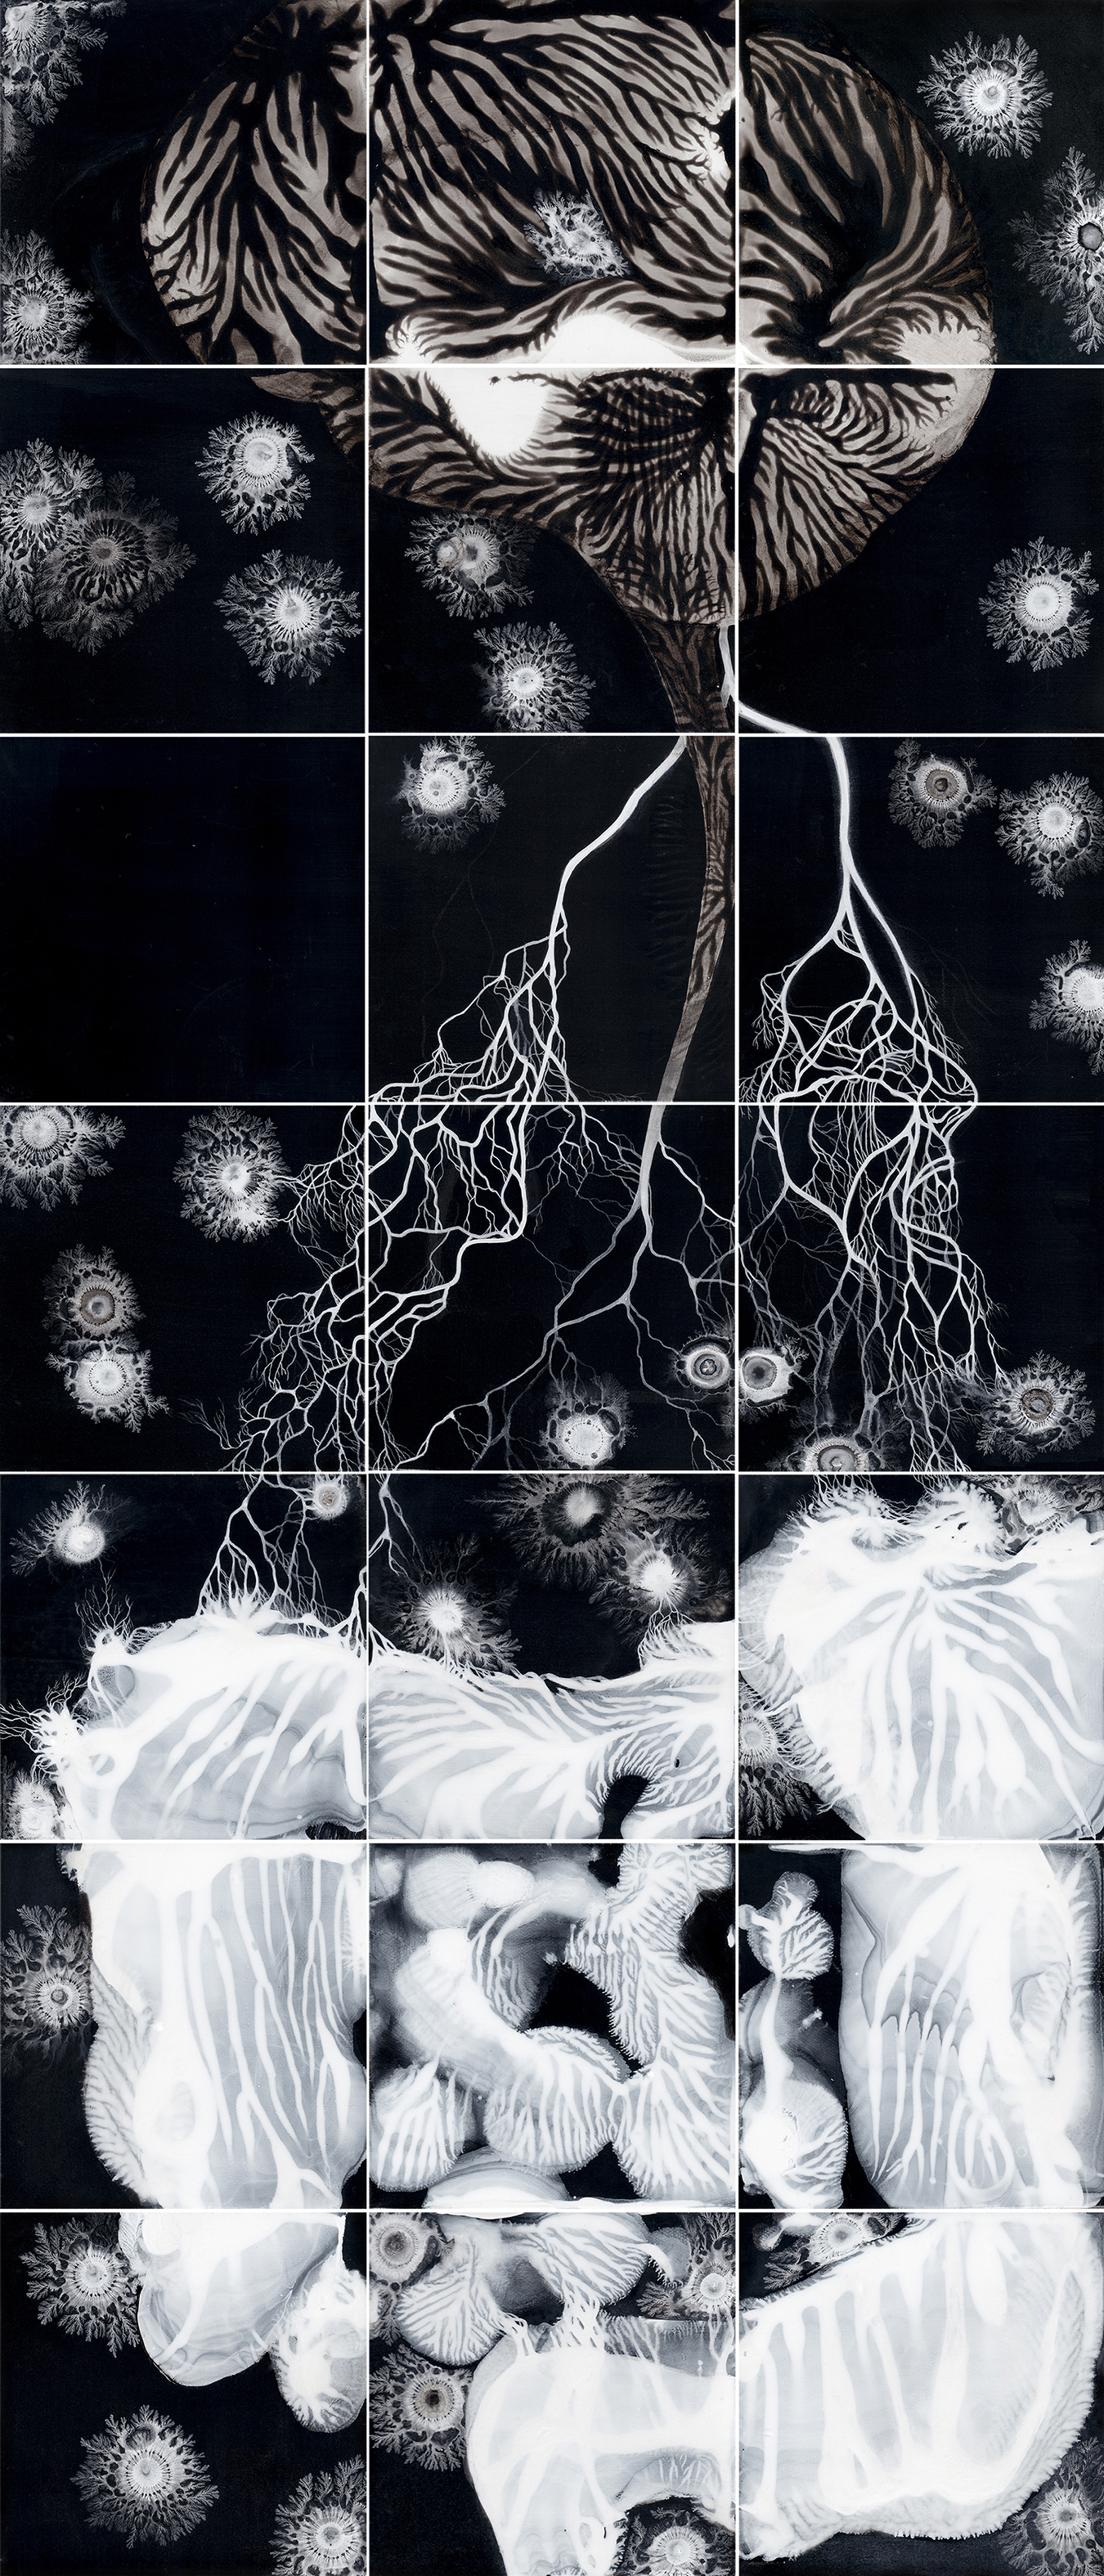 Puzzle Painting, Title: Crossing, black and white image of a brain and gut connected by the vagus nerve